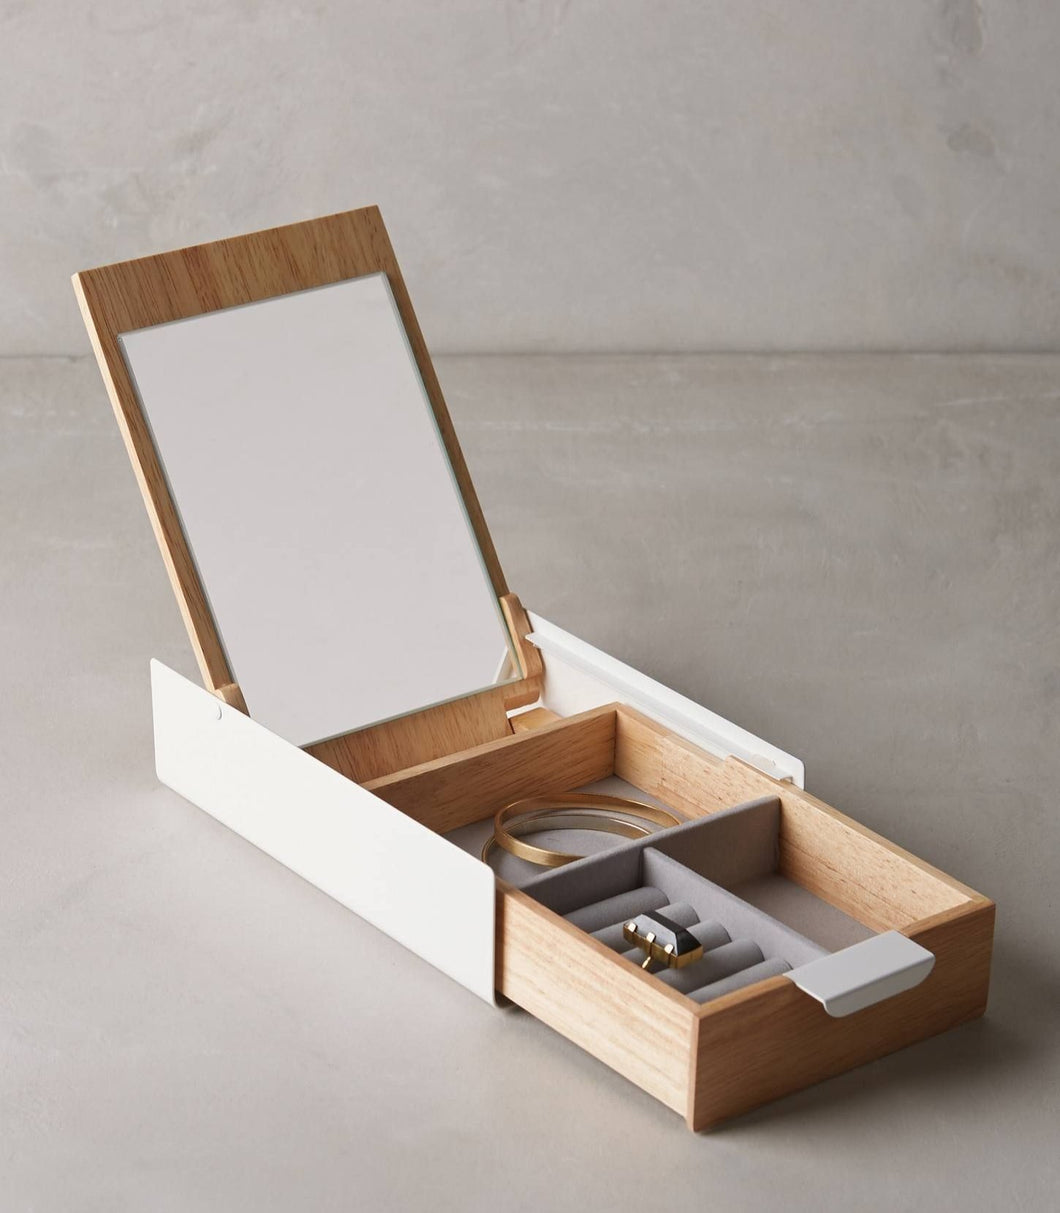 Reflection Storage Box